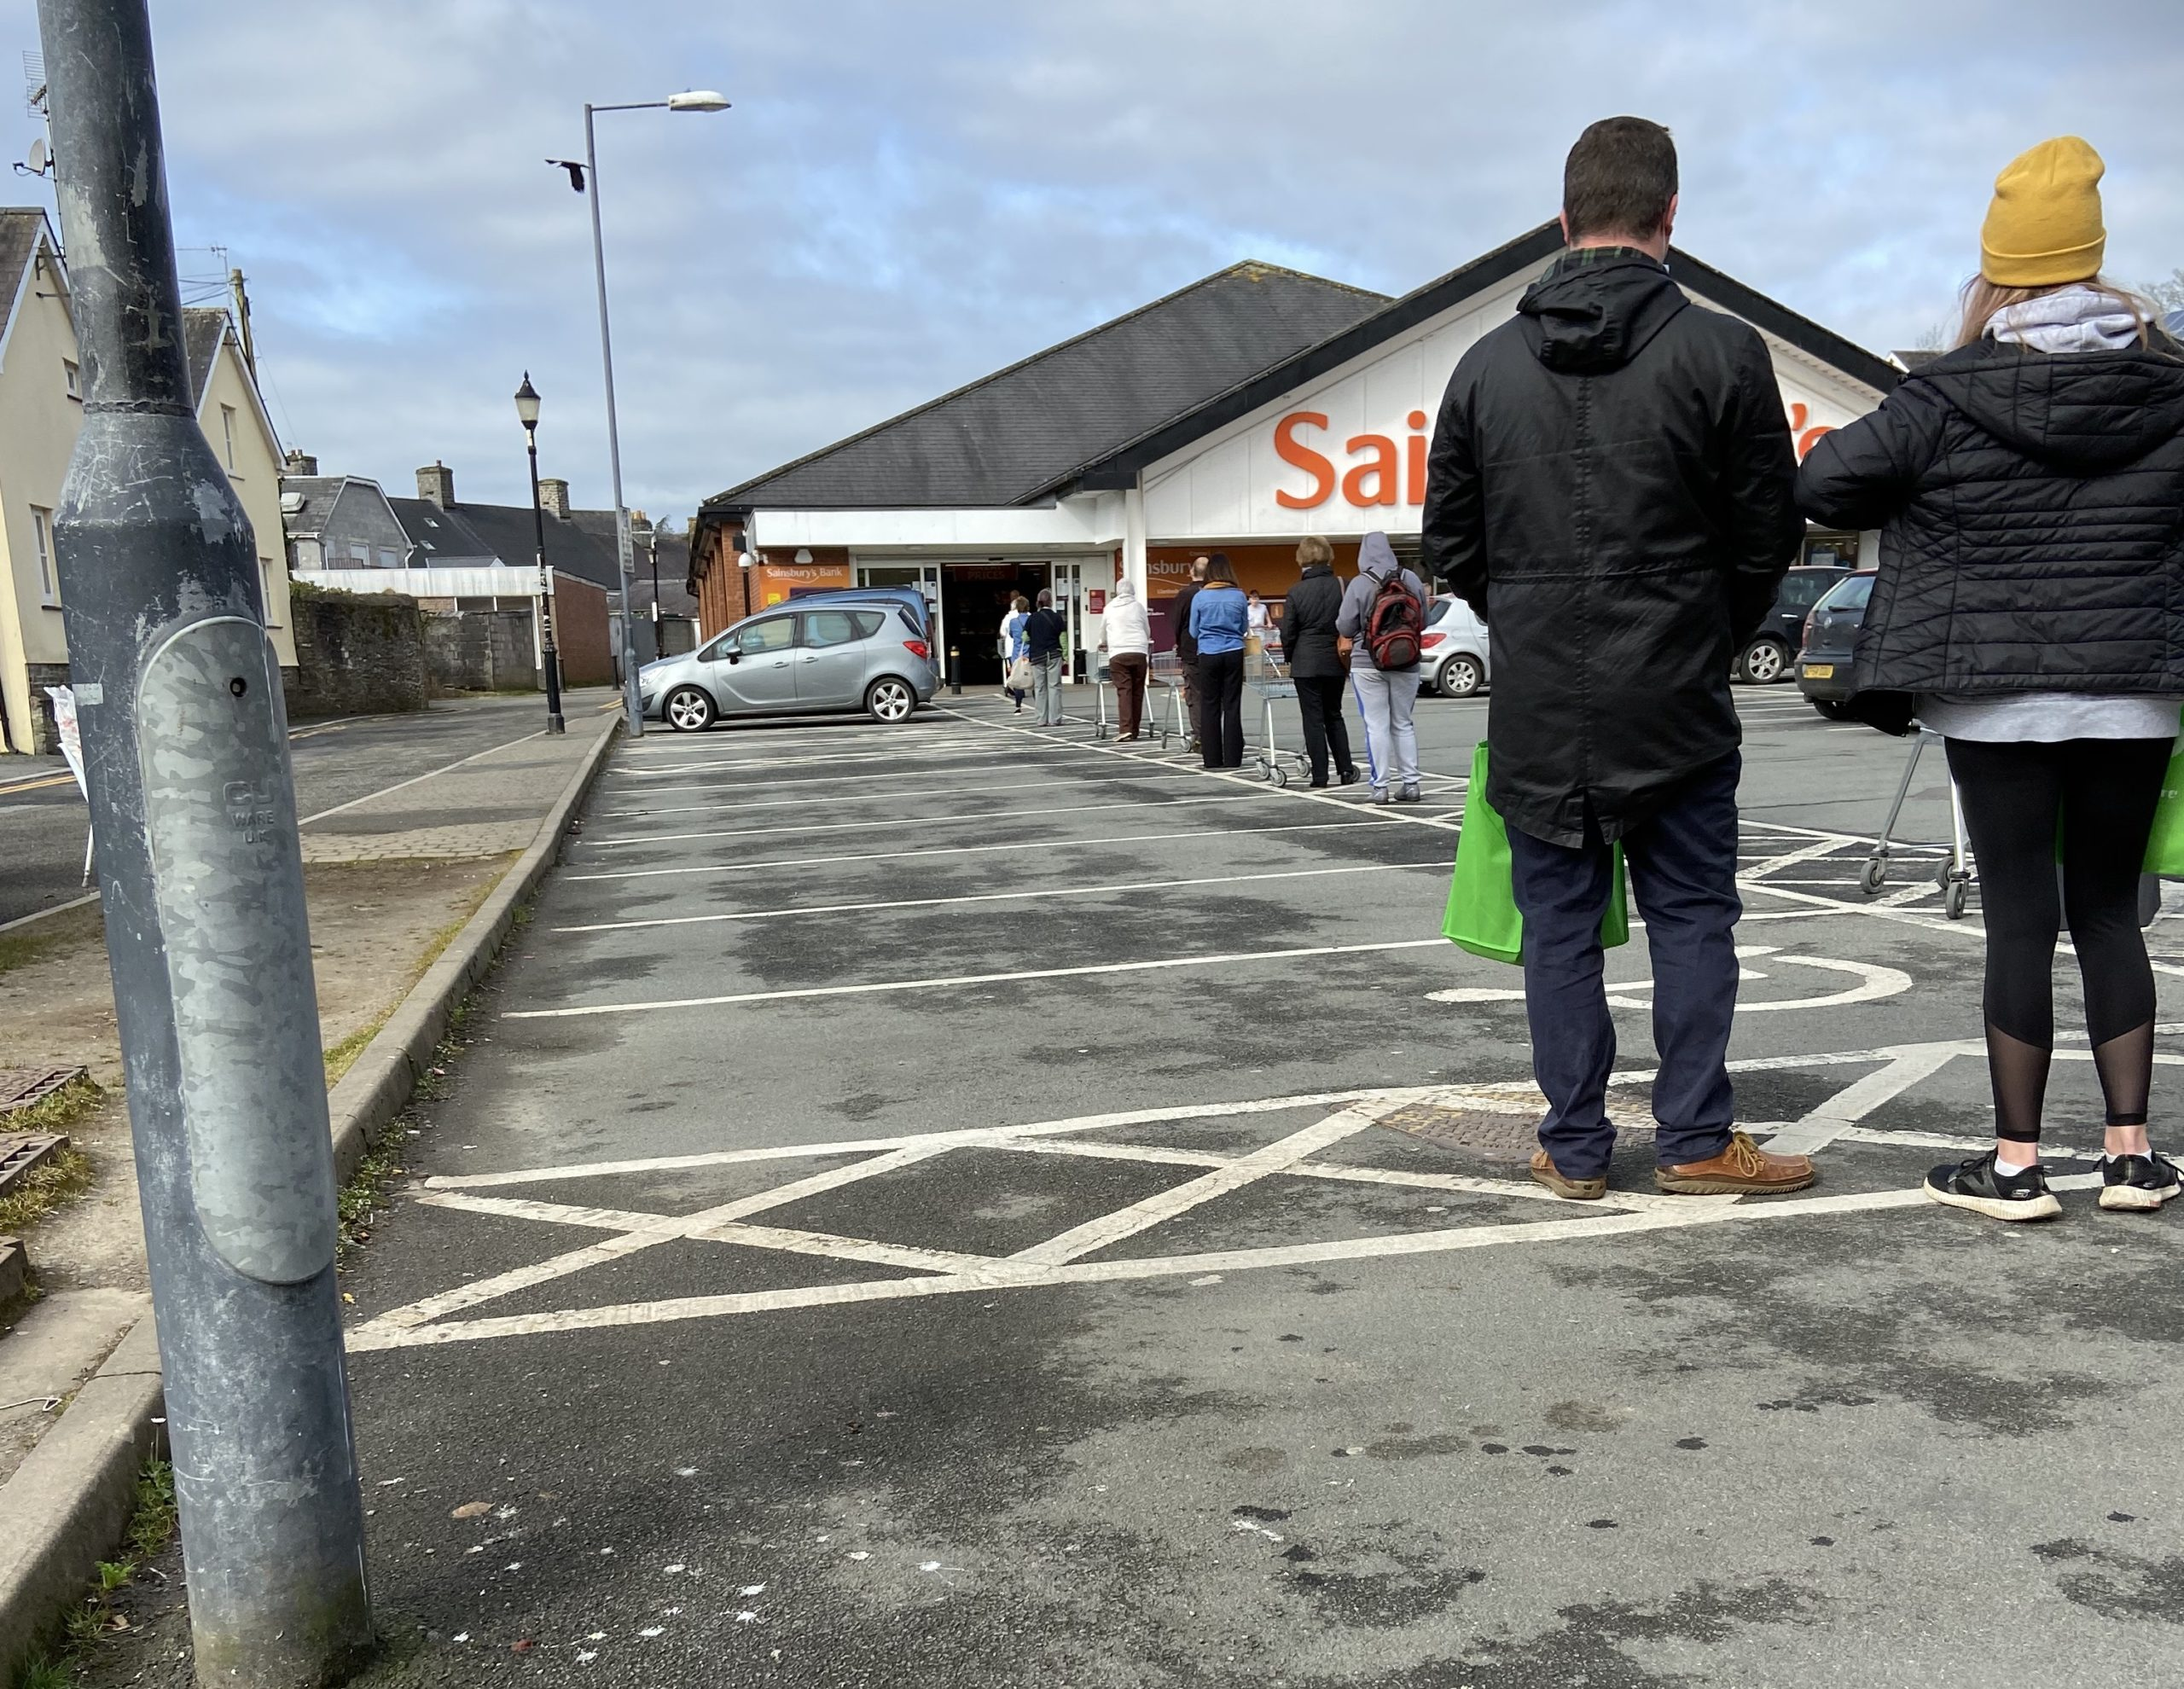 a queue of people in a car park waiting to get in to Sainsbury's